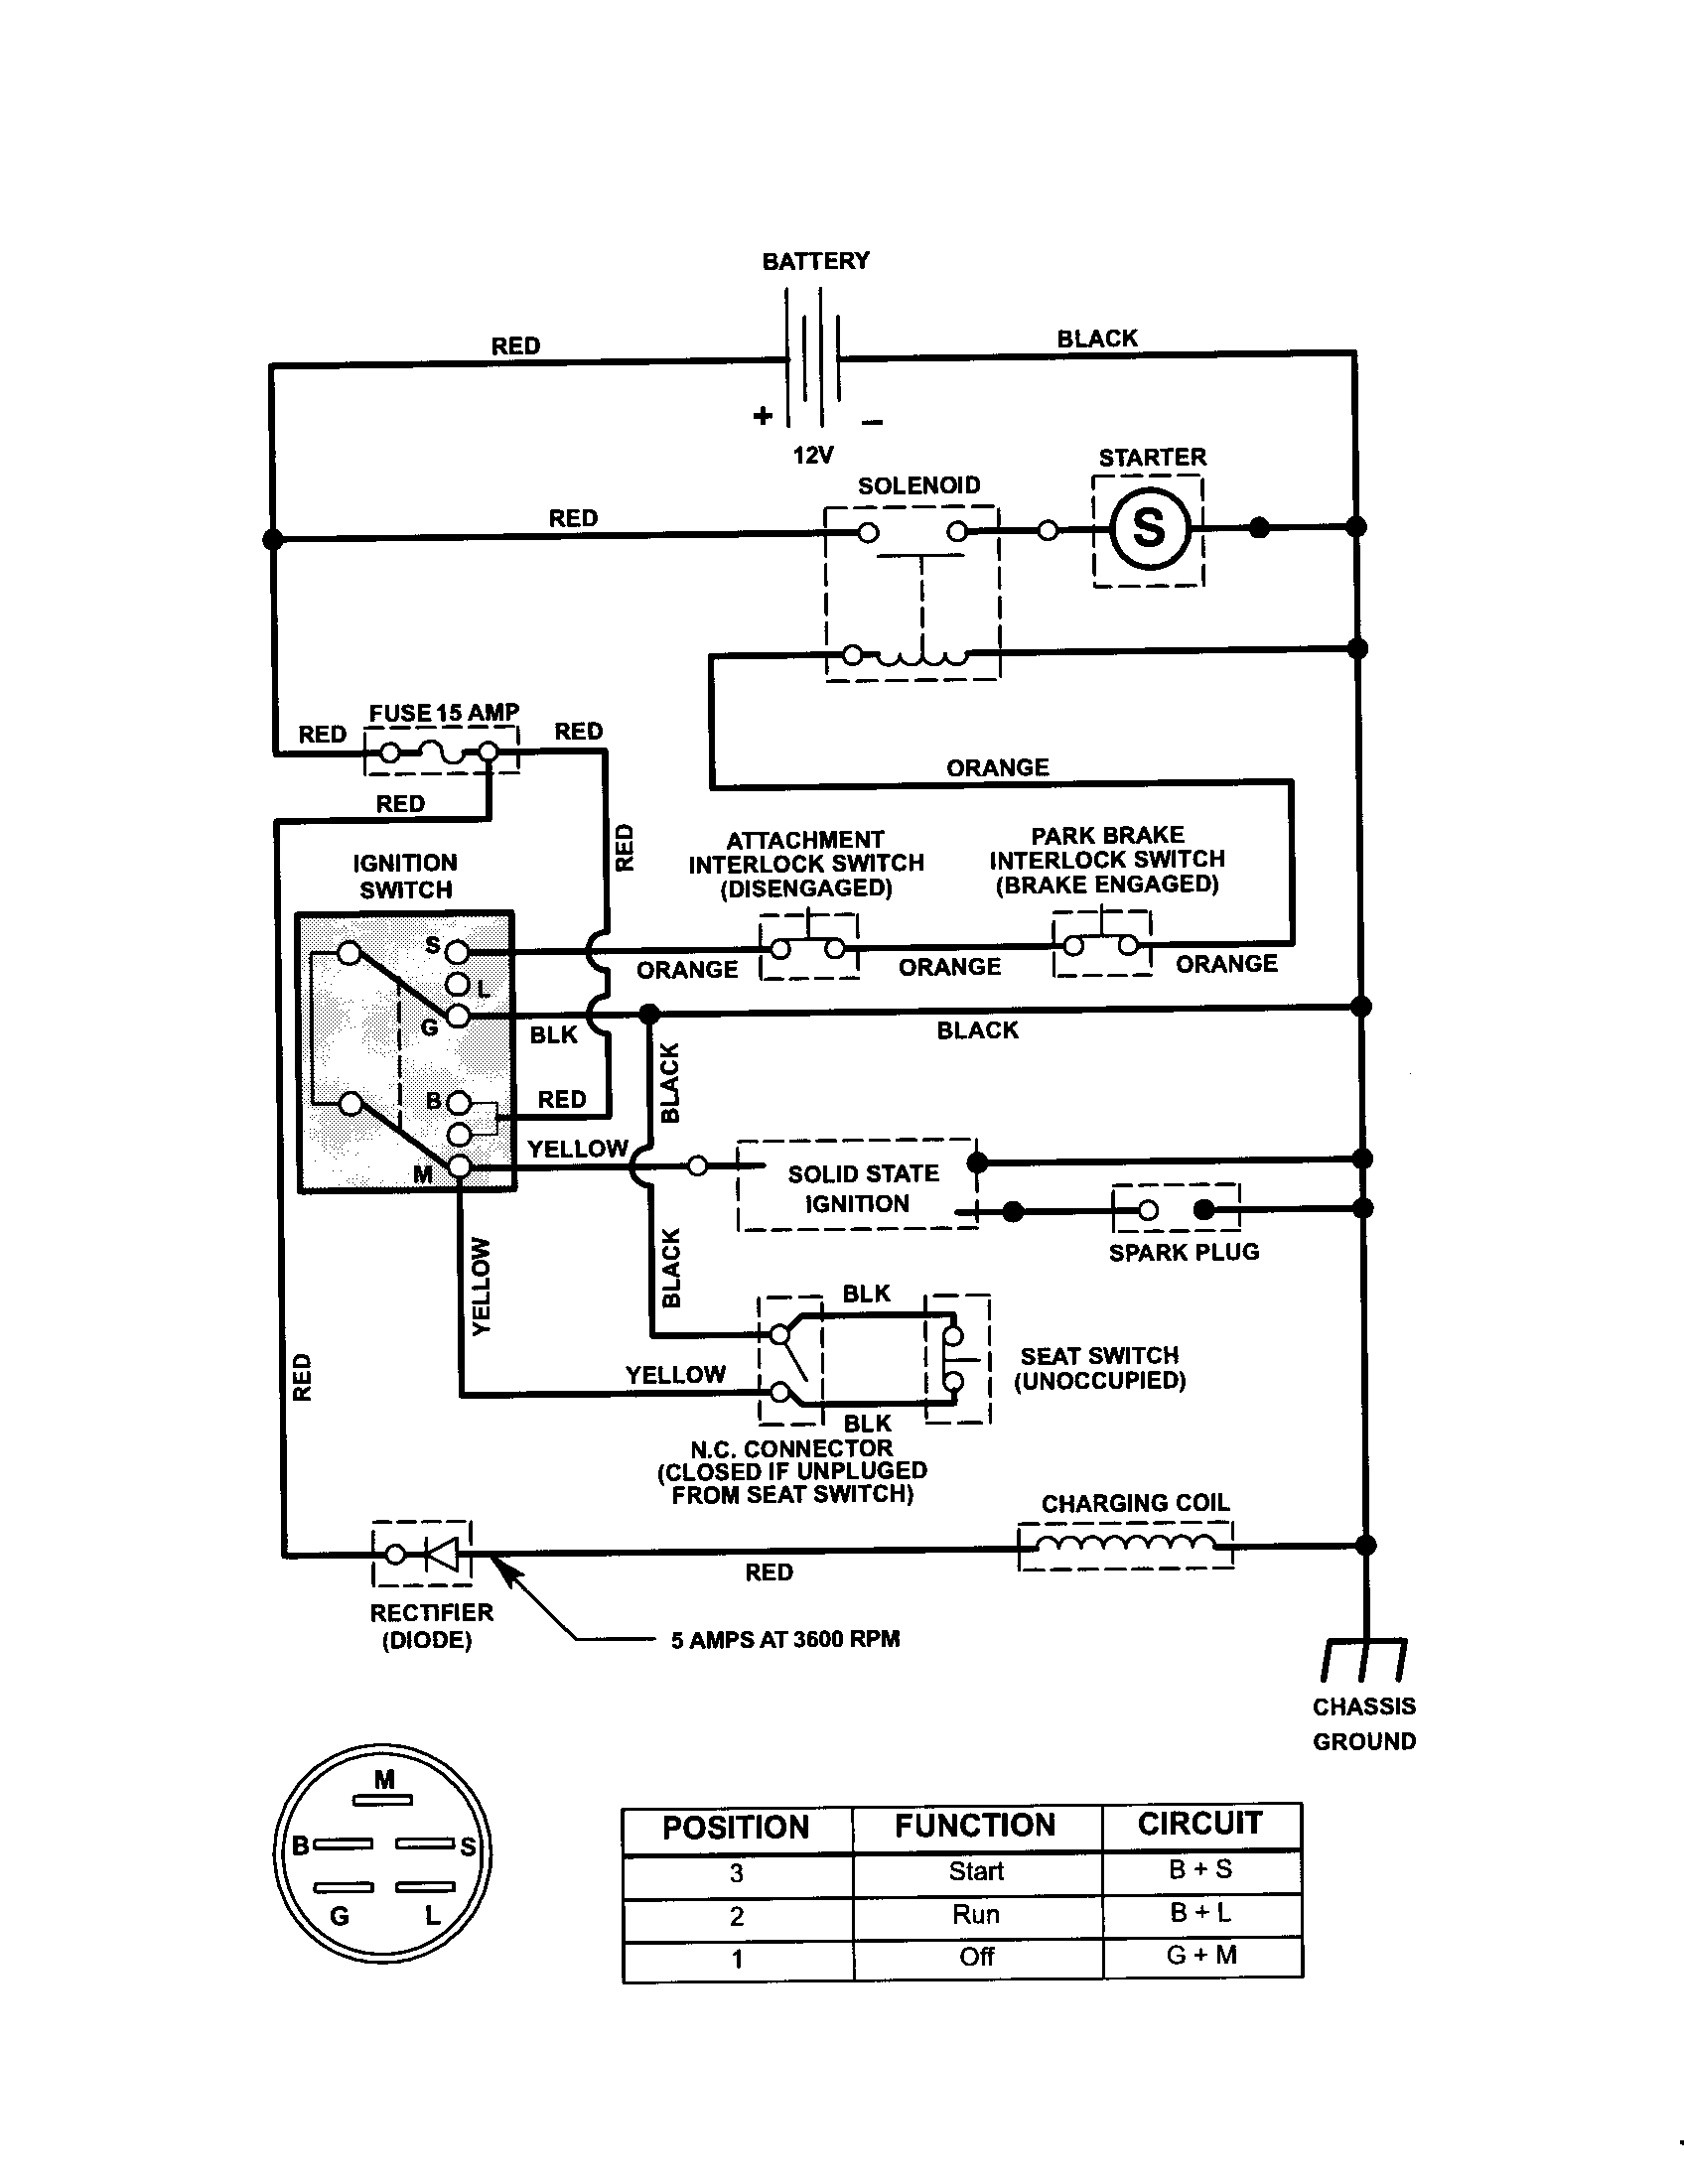 1b4fc64e2bcb7b381848942ff5c84dce craftsman riding mower electrical diagram pictures of craftsman craftsman lawn tractor wiring diagram at bakdesigns.co